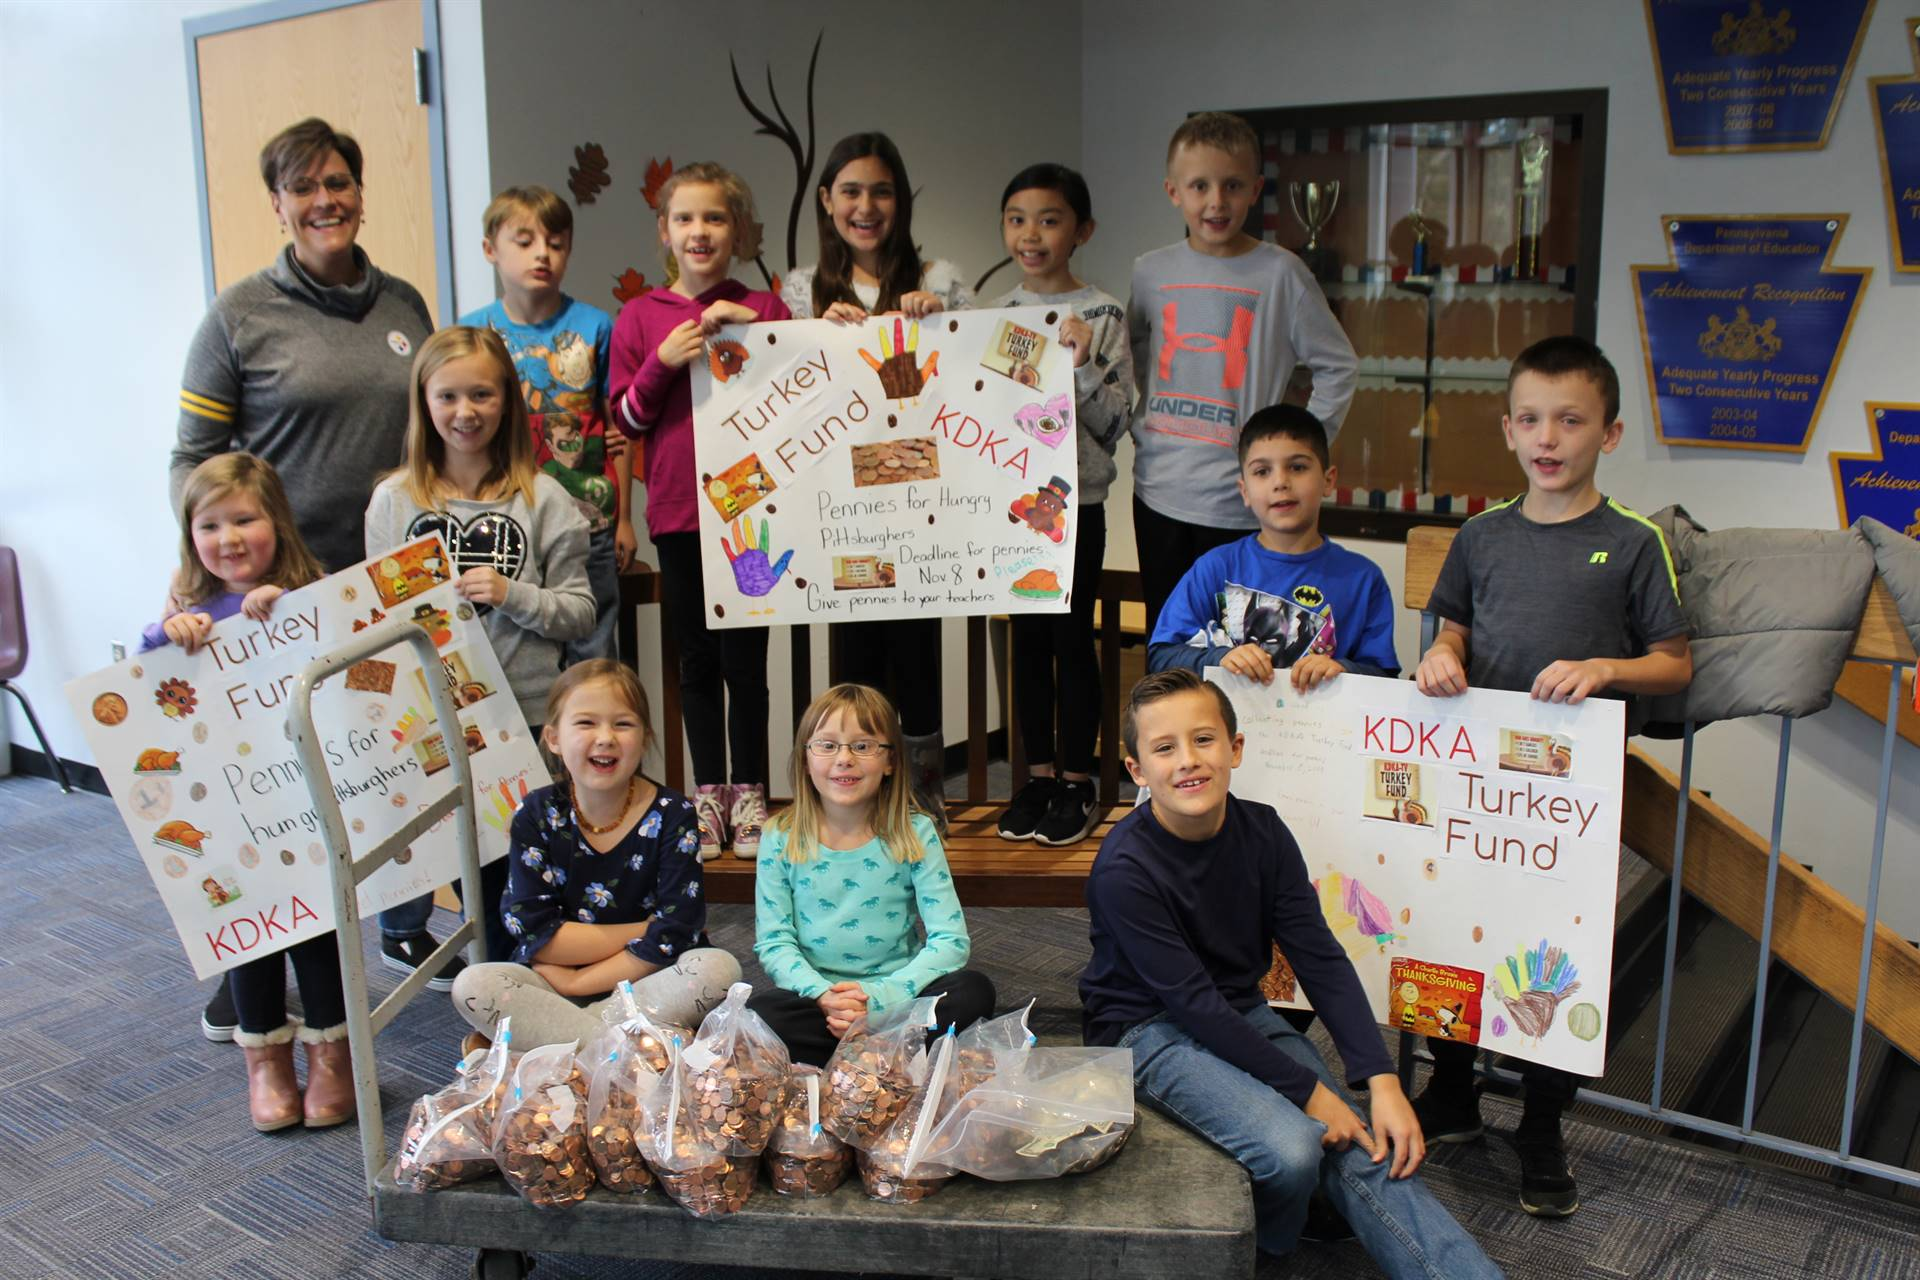 Mrs. Reese and Memorial students with the money collected for the KDKA Turkey Fund